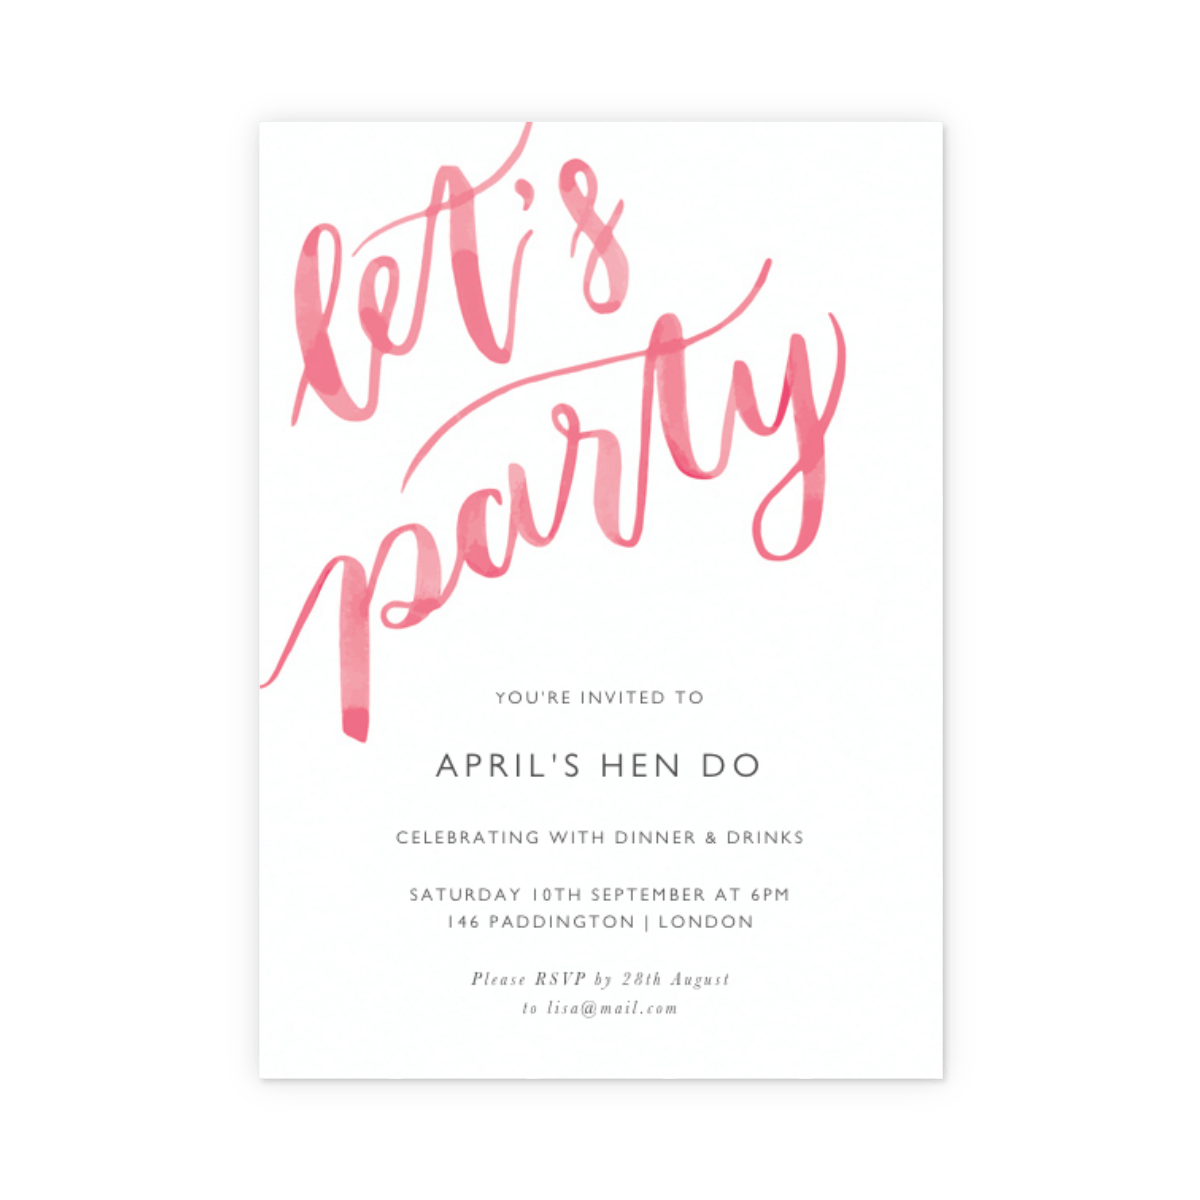 Https%3a%2f%2fwww.papier.com%2fproduct image%2f83814%2f4%2flet s party brush lettering 20259 front 1573129225.png?ixlib=rb 1.1